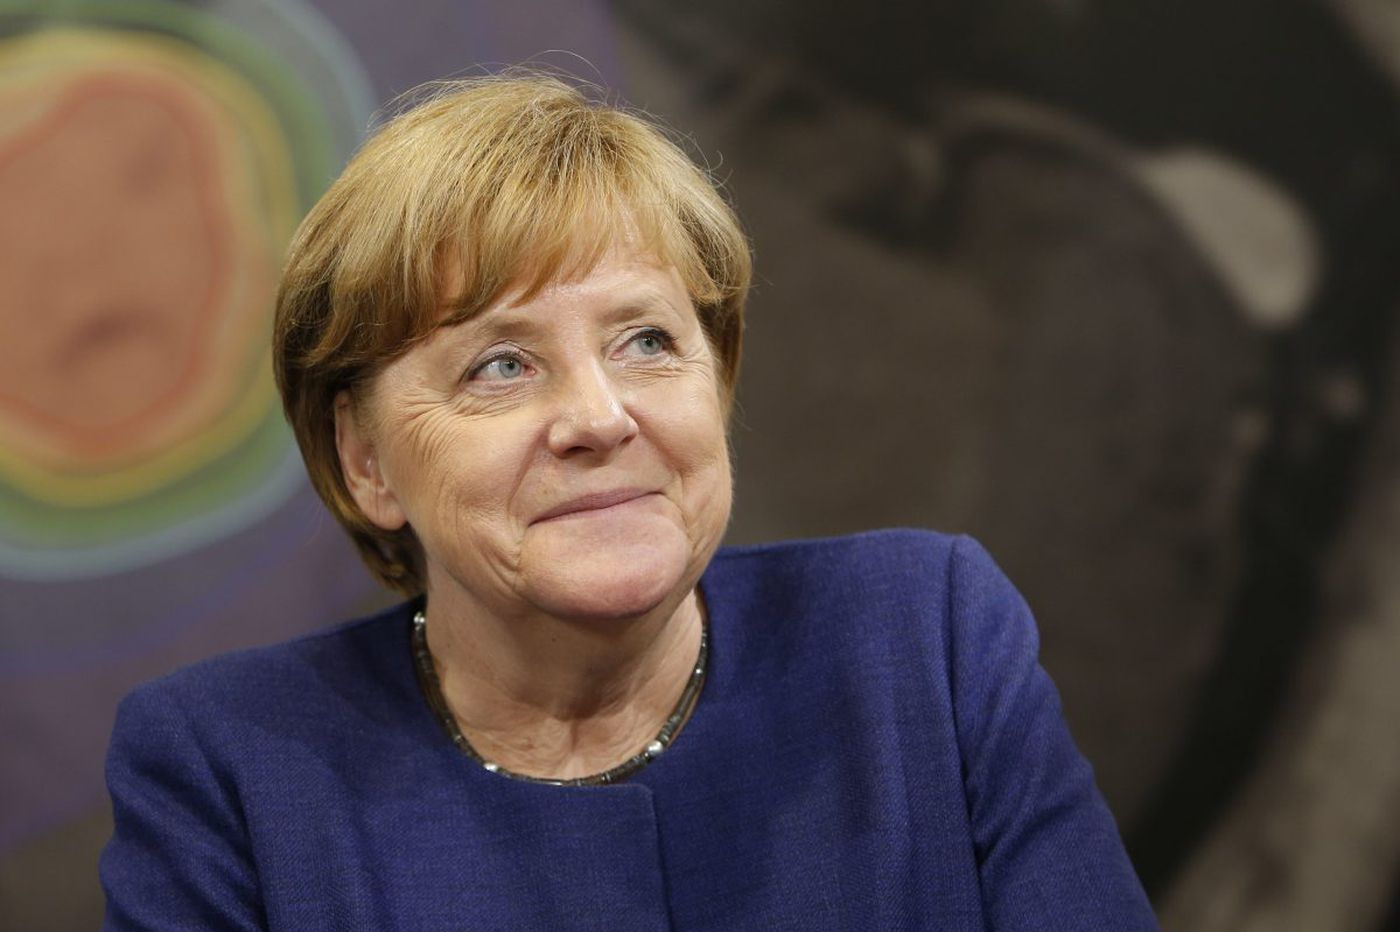 'Mother' Merkel, who knows how to deal with Russian hacking, set to win German elections